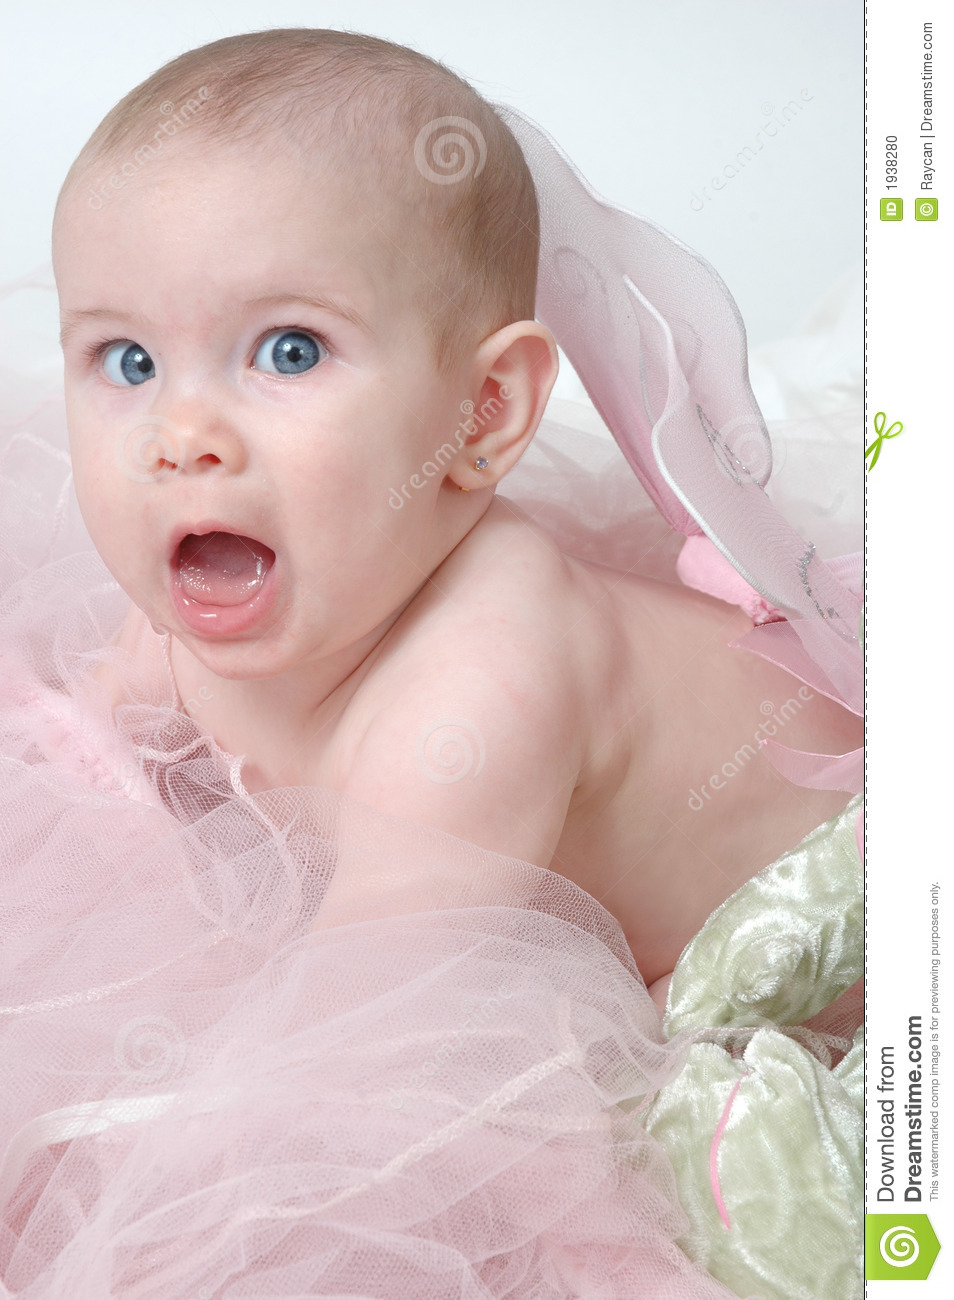 baby with blue eyes wearing fairy wings or angel wings. Surprised baby